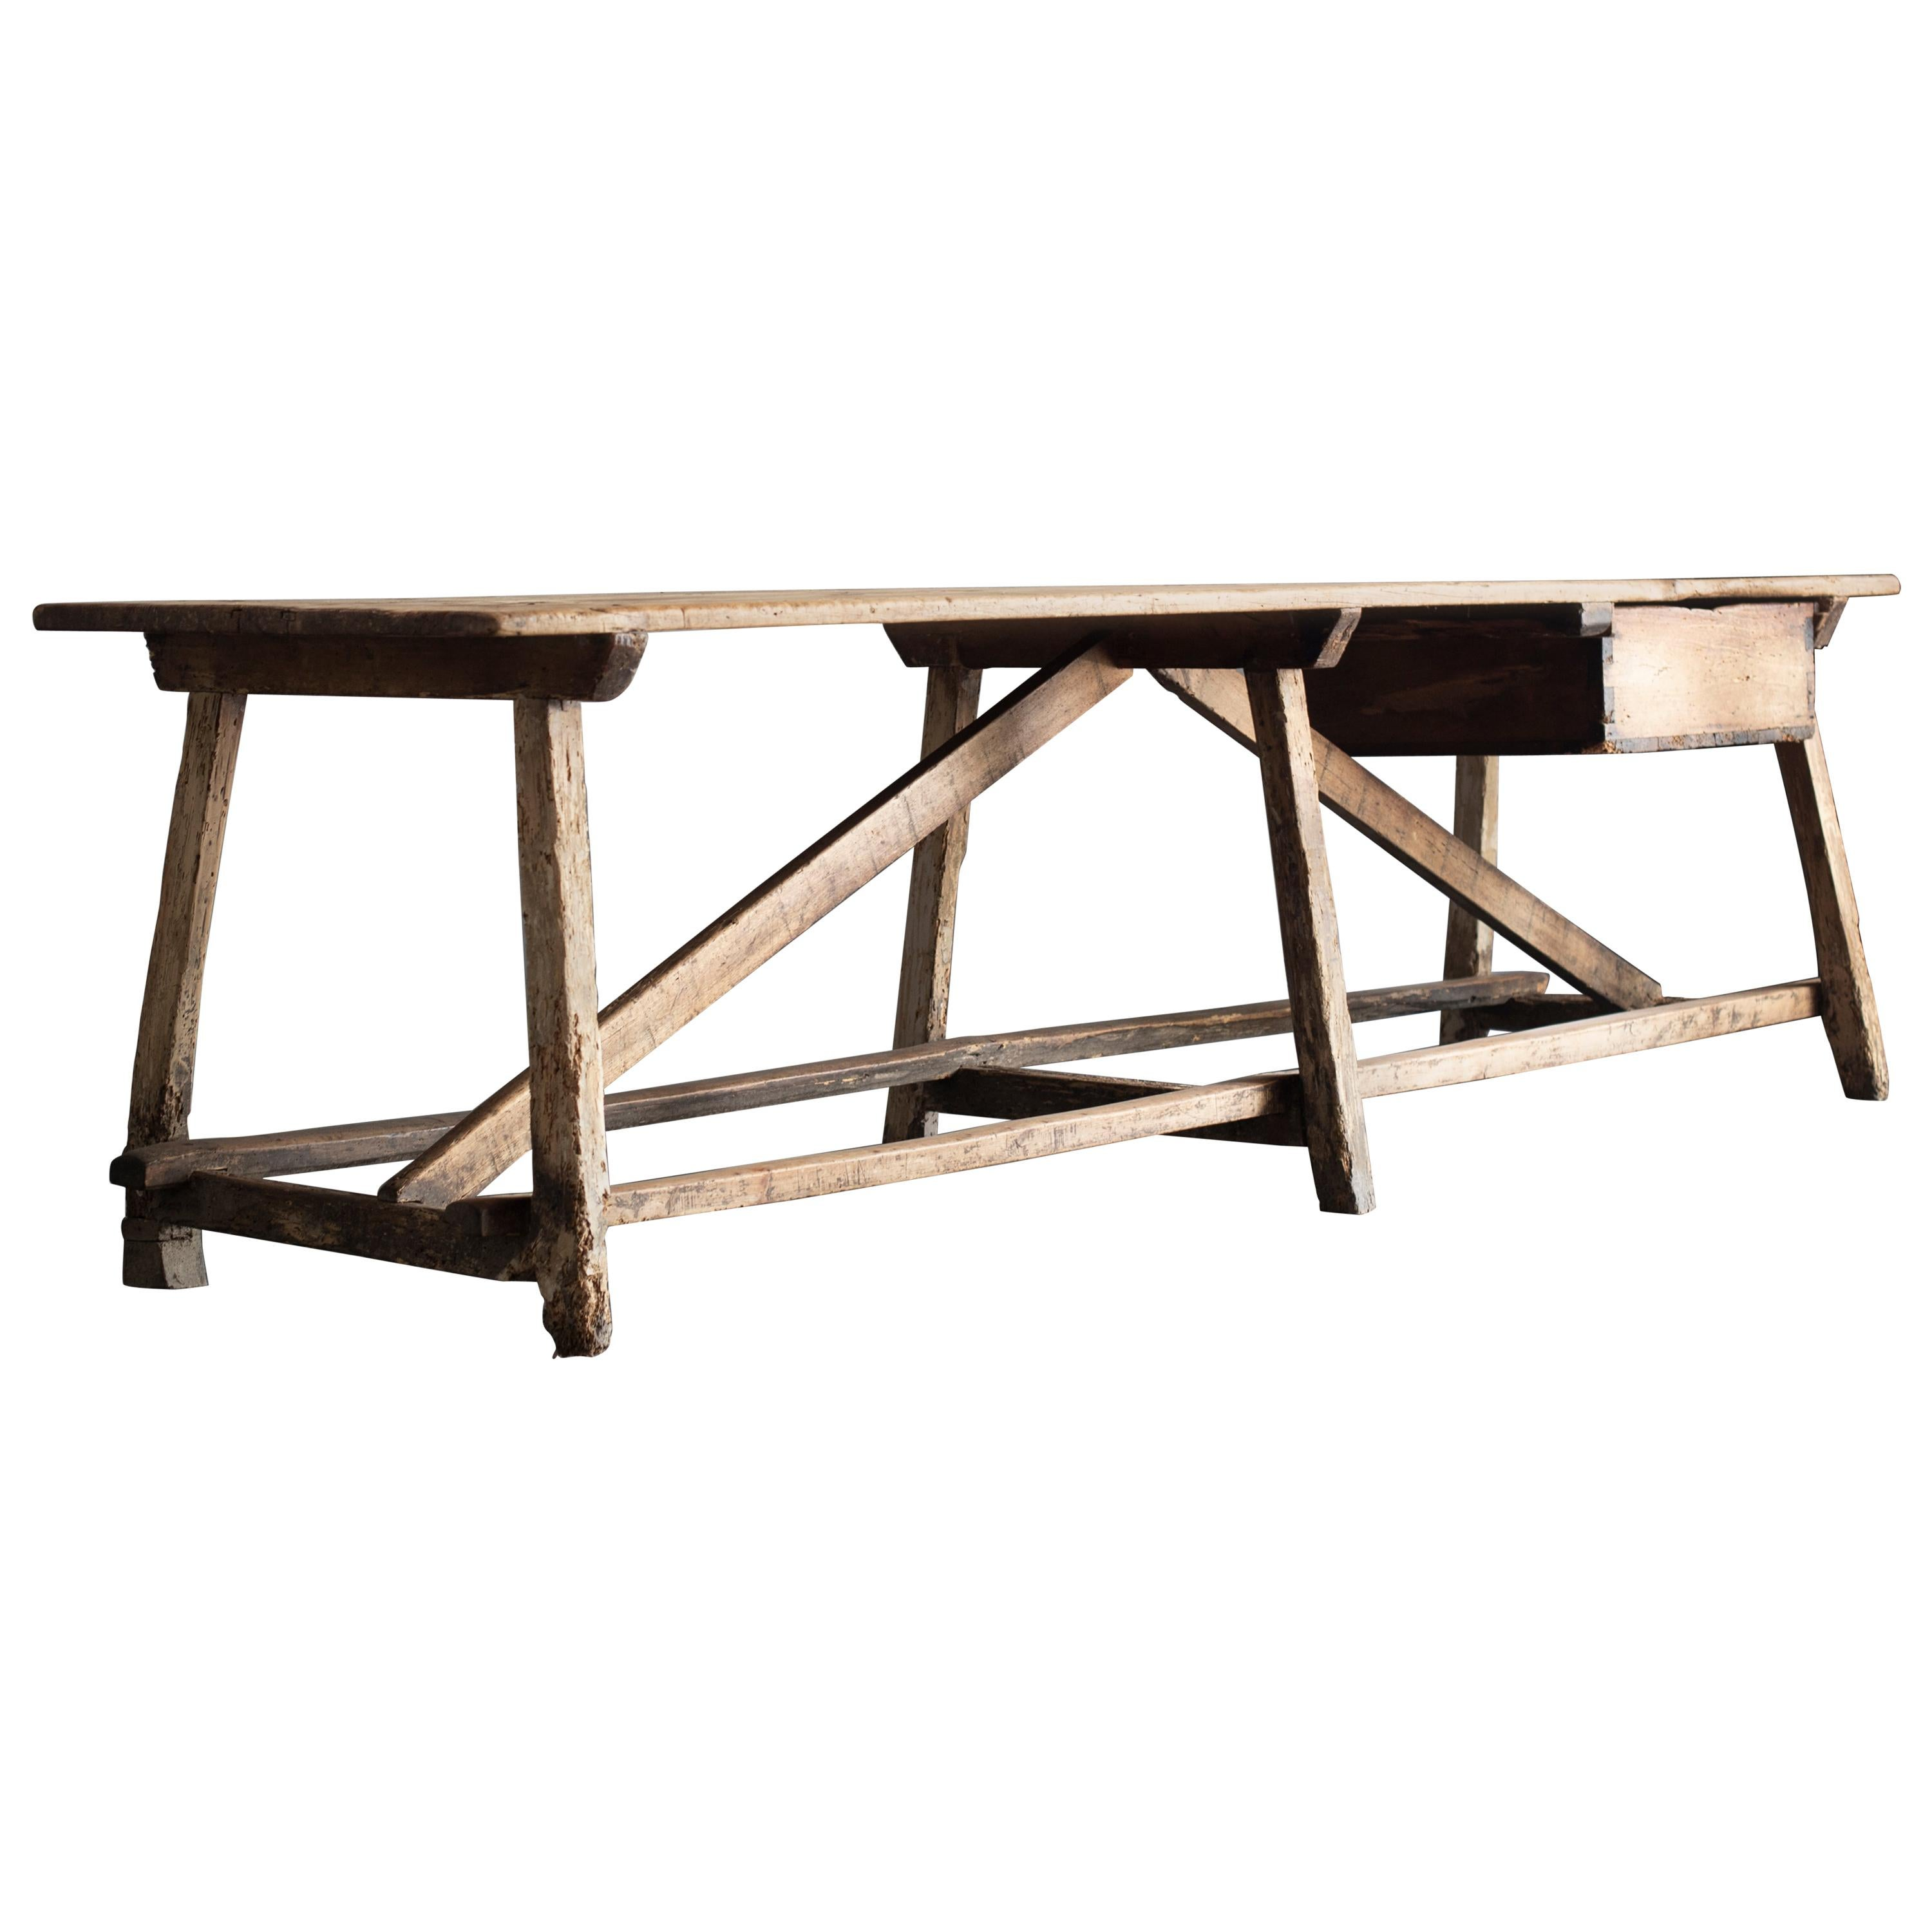 Merveilleux Wooden Long Work Table From Spain, 1850s For Sale